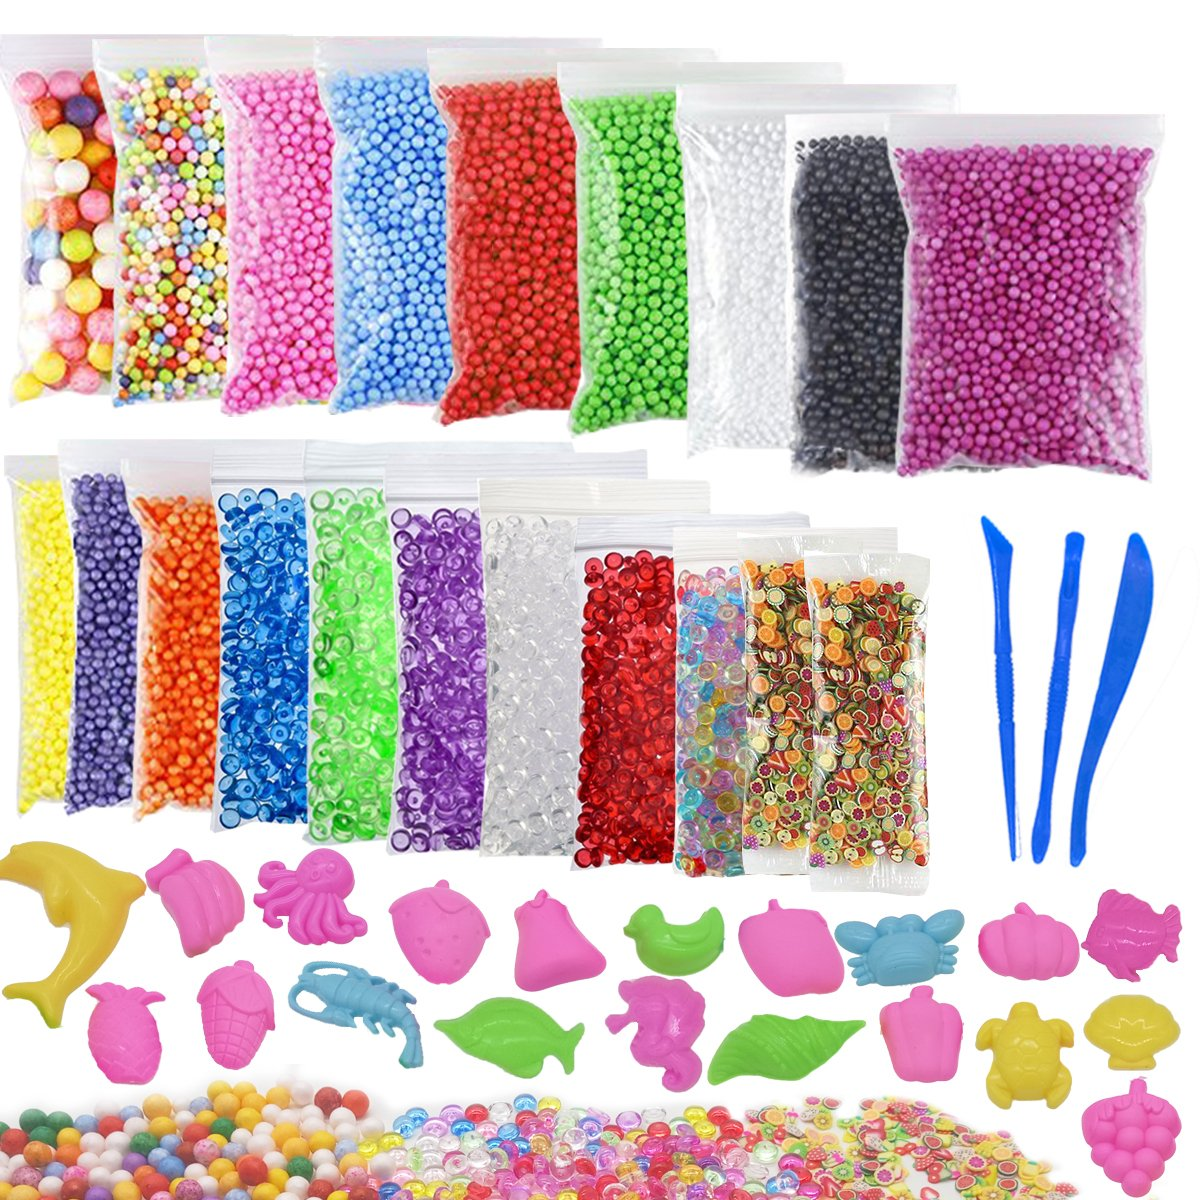 Slime Foam Beads, 43 Pack Slime Making Kit Including Styrofoam Foam Balls, Fishbowl Beads, Fruit Slices, Slime Tools and DIY Moulds for Slime Making Art DIY Craft Arisingdeals